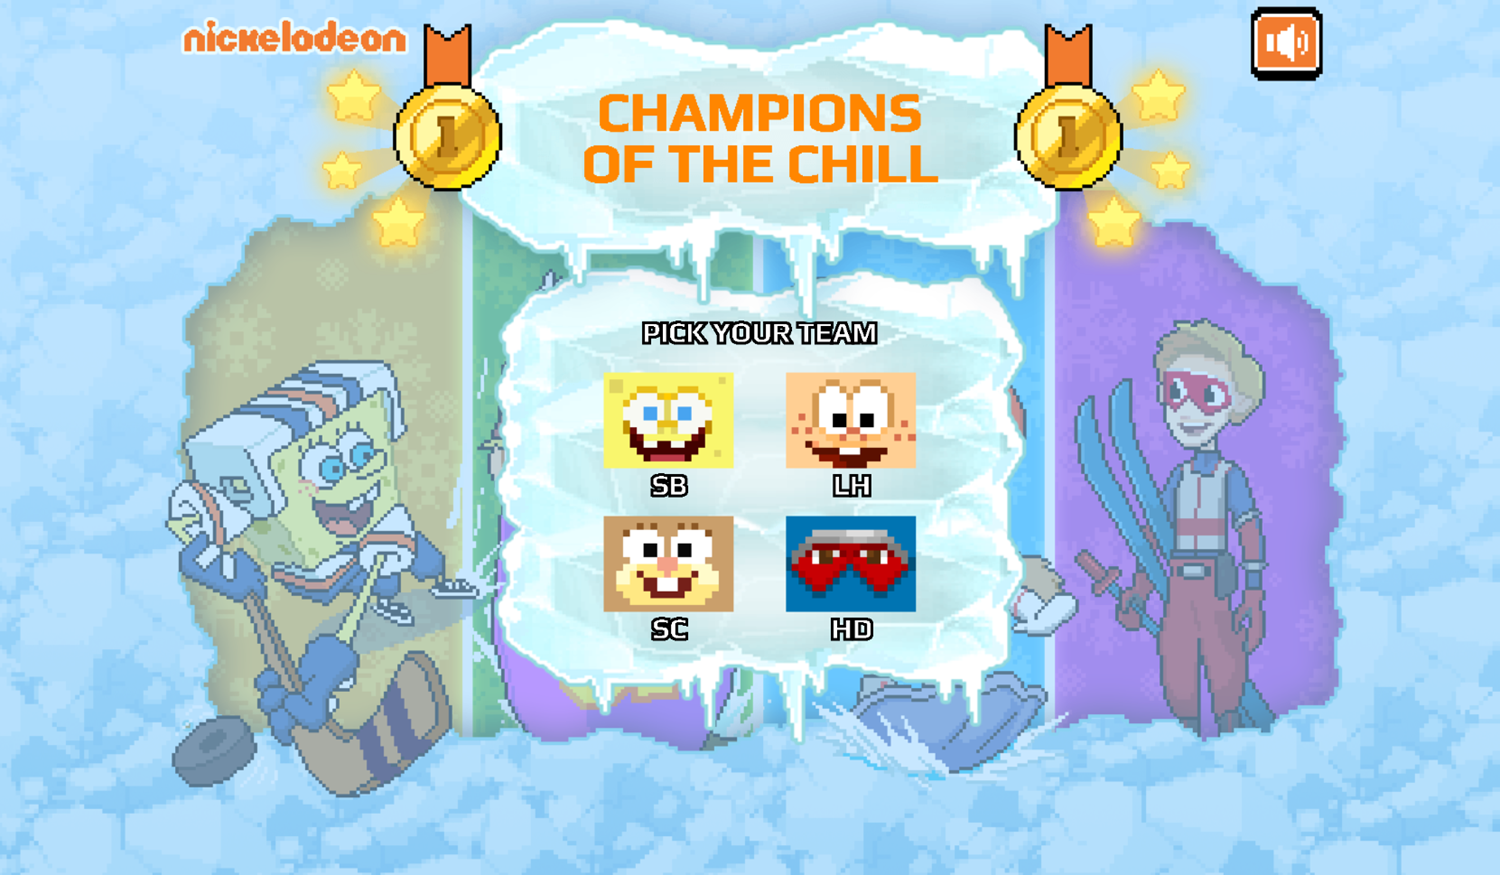 Nick Champions of the Chill 2 Game Pick Team Screenshot.